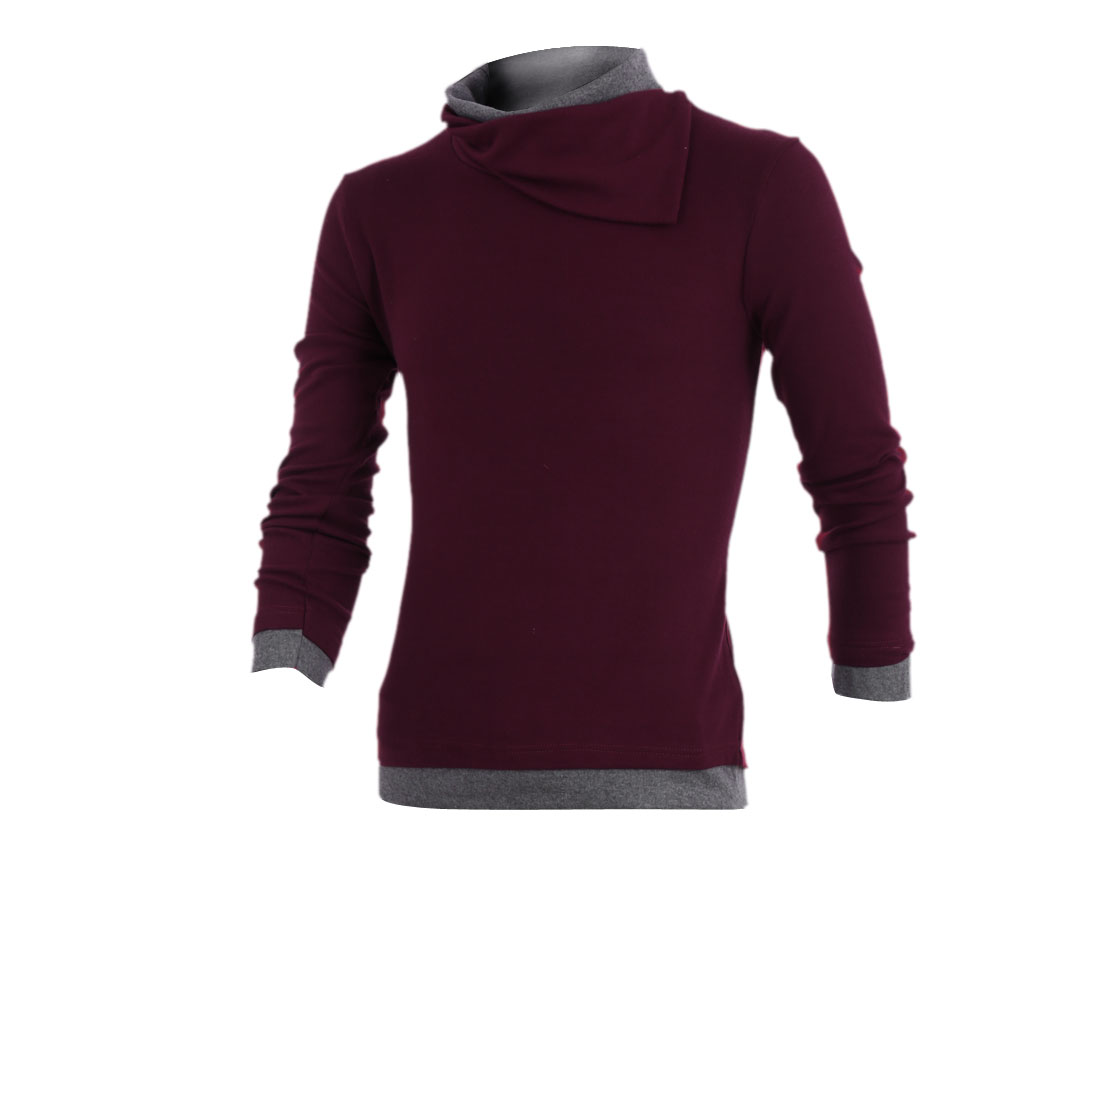 Men Cowl Neck Long Sleeve Patchwork Casual Shirt Burgundy S